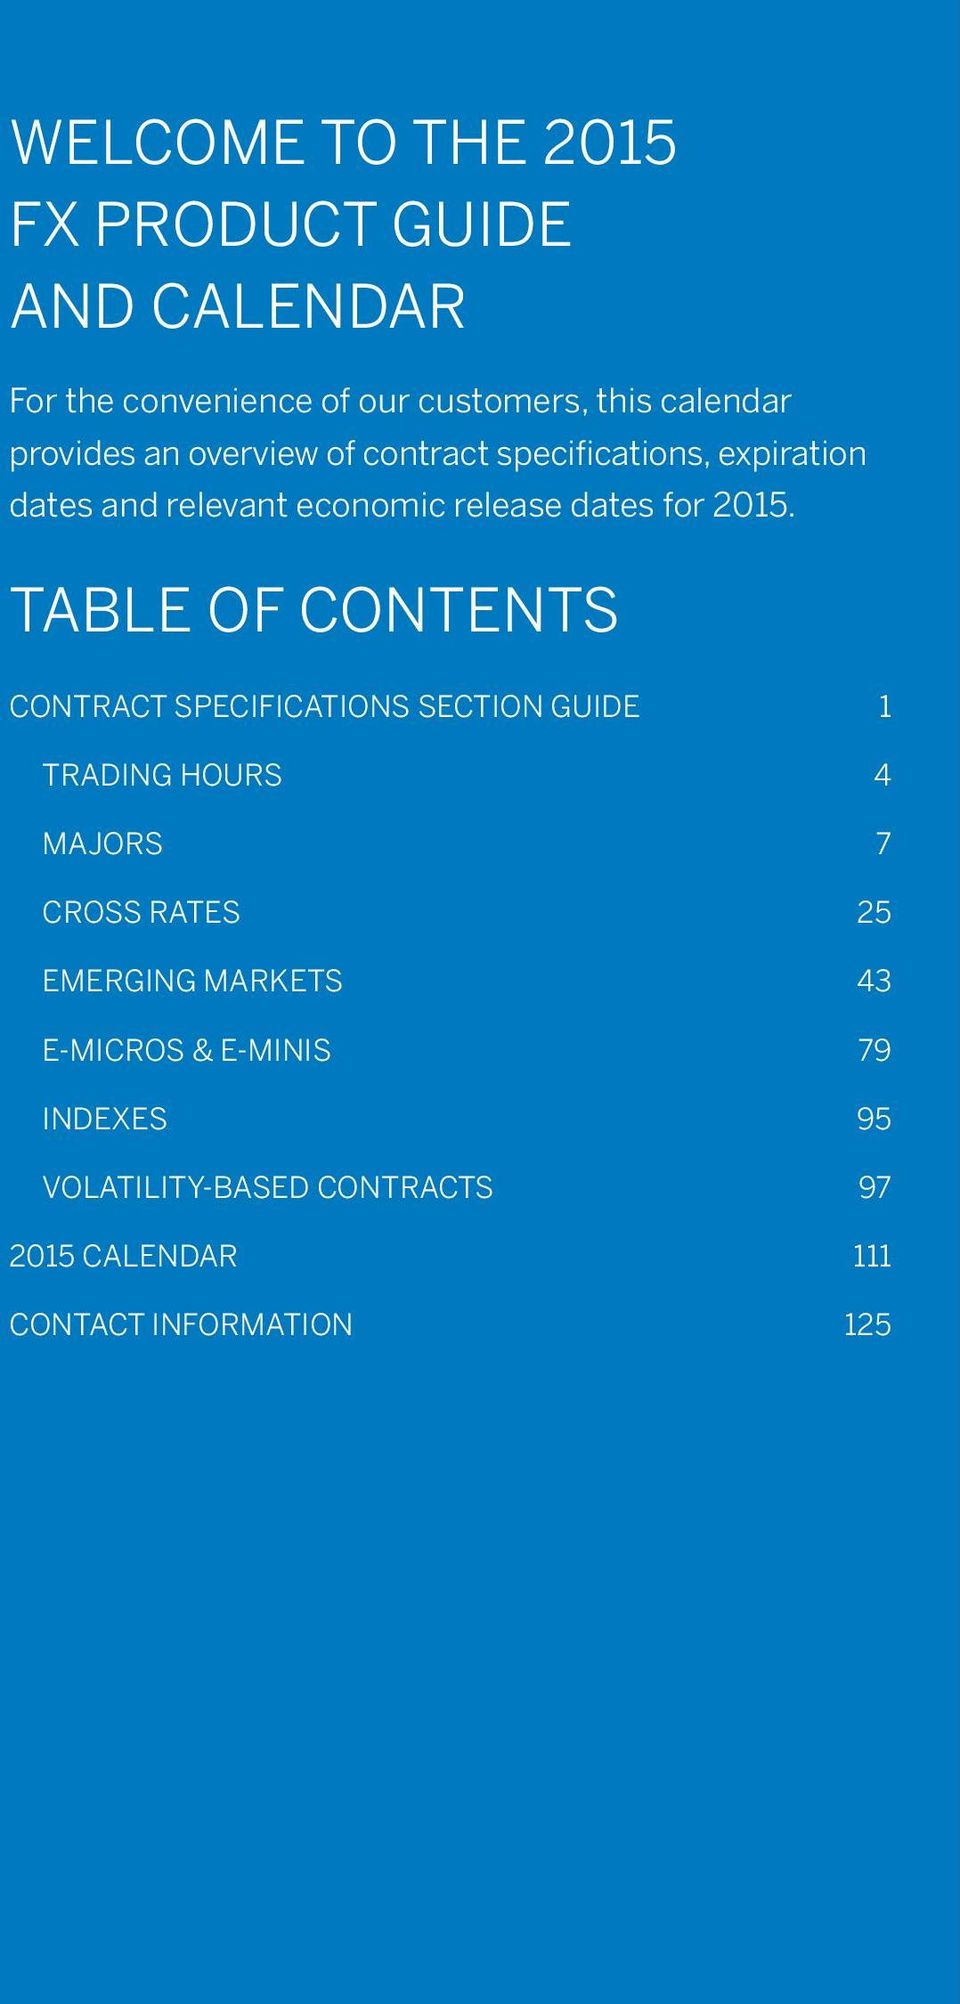 2015. TABLE OF CONTENTS CONTRACT SPECIFICATIONS SECTION GUIDE 1 TRADING HOURS 4 MAJORS 7 CROSS RATES 25